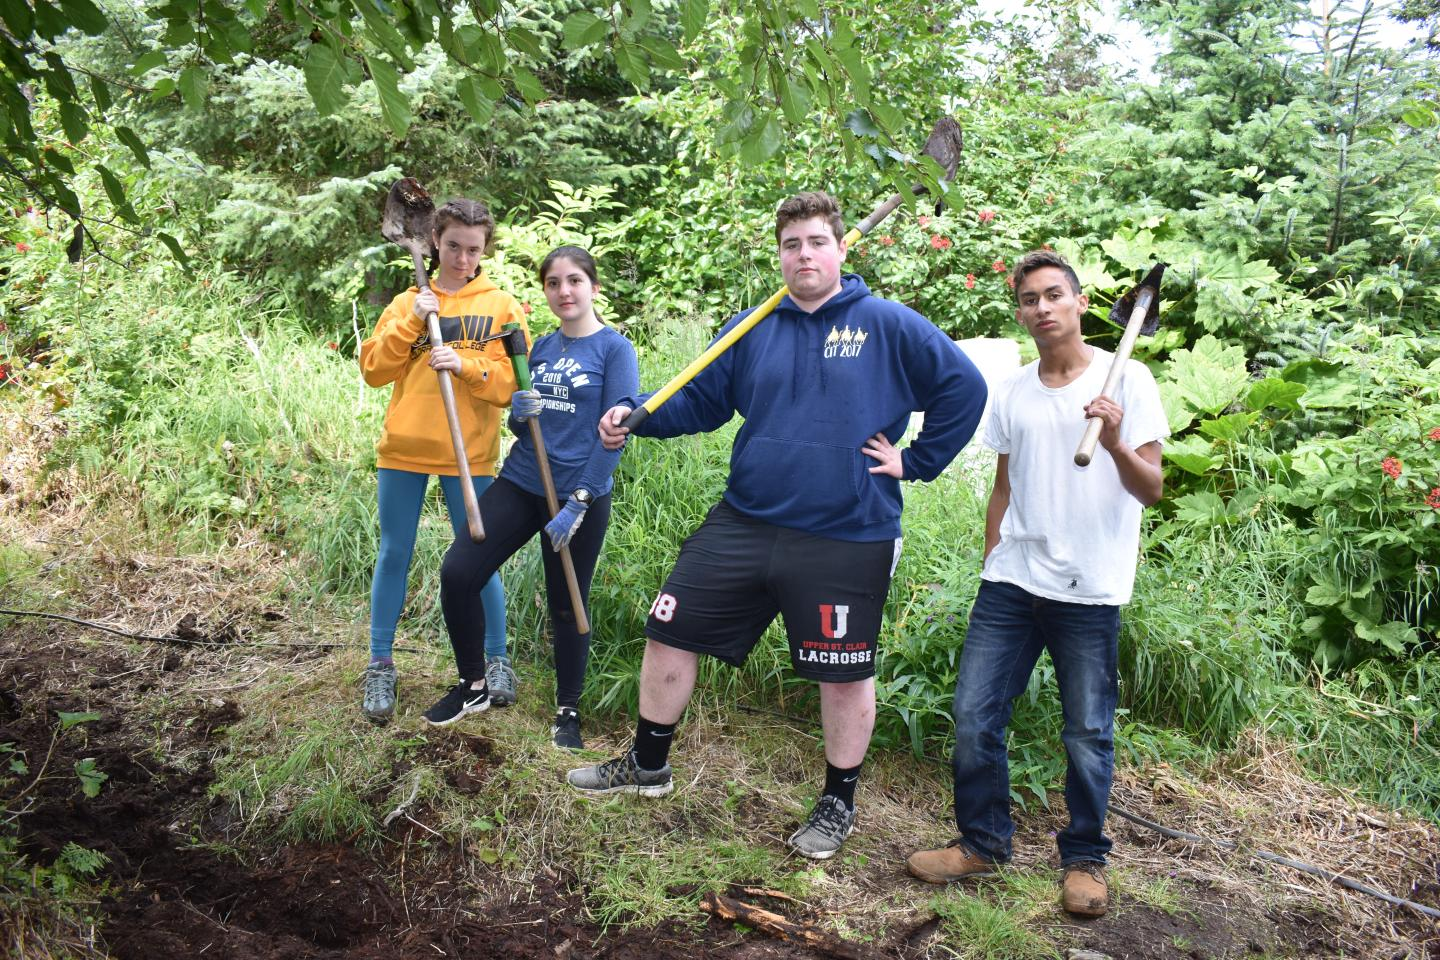 Teens do service work in the wilderness on summer adventure tour of Alaska.